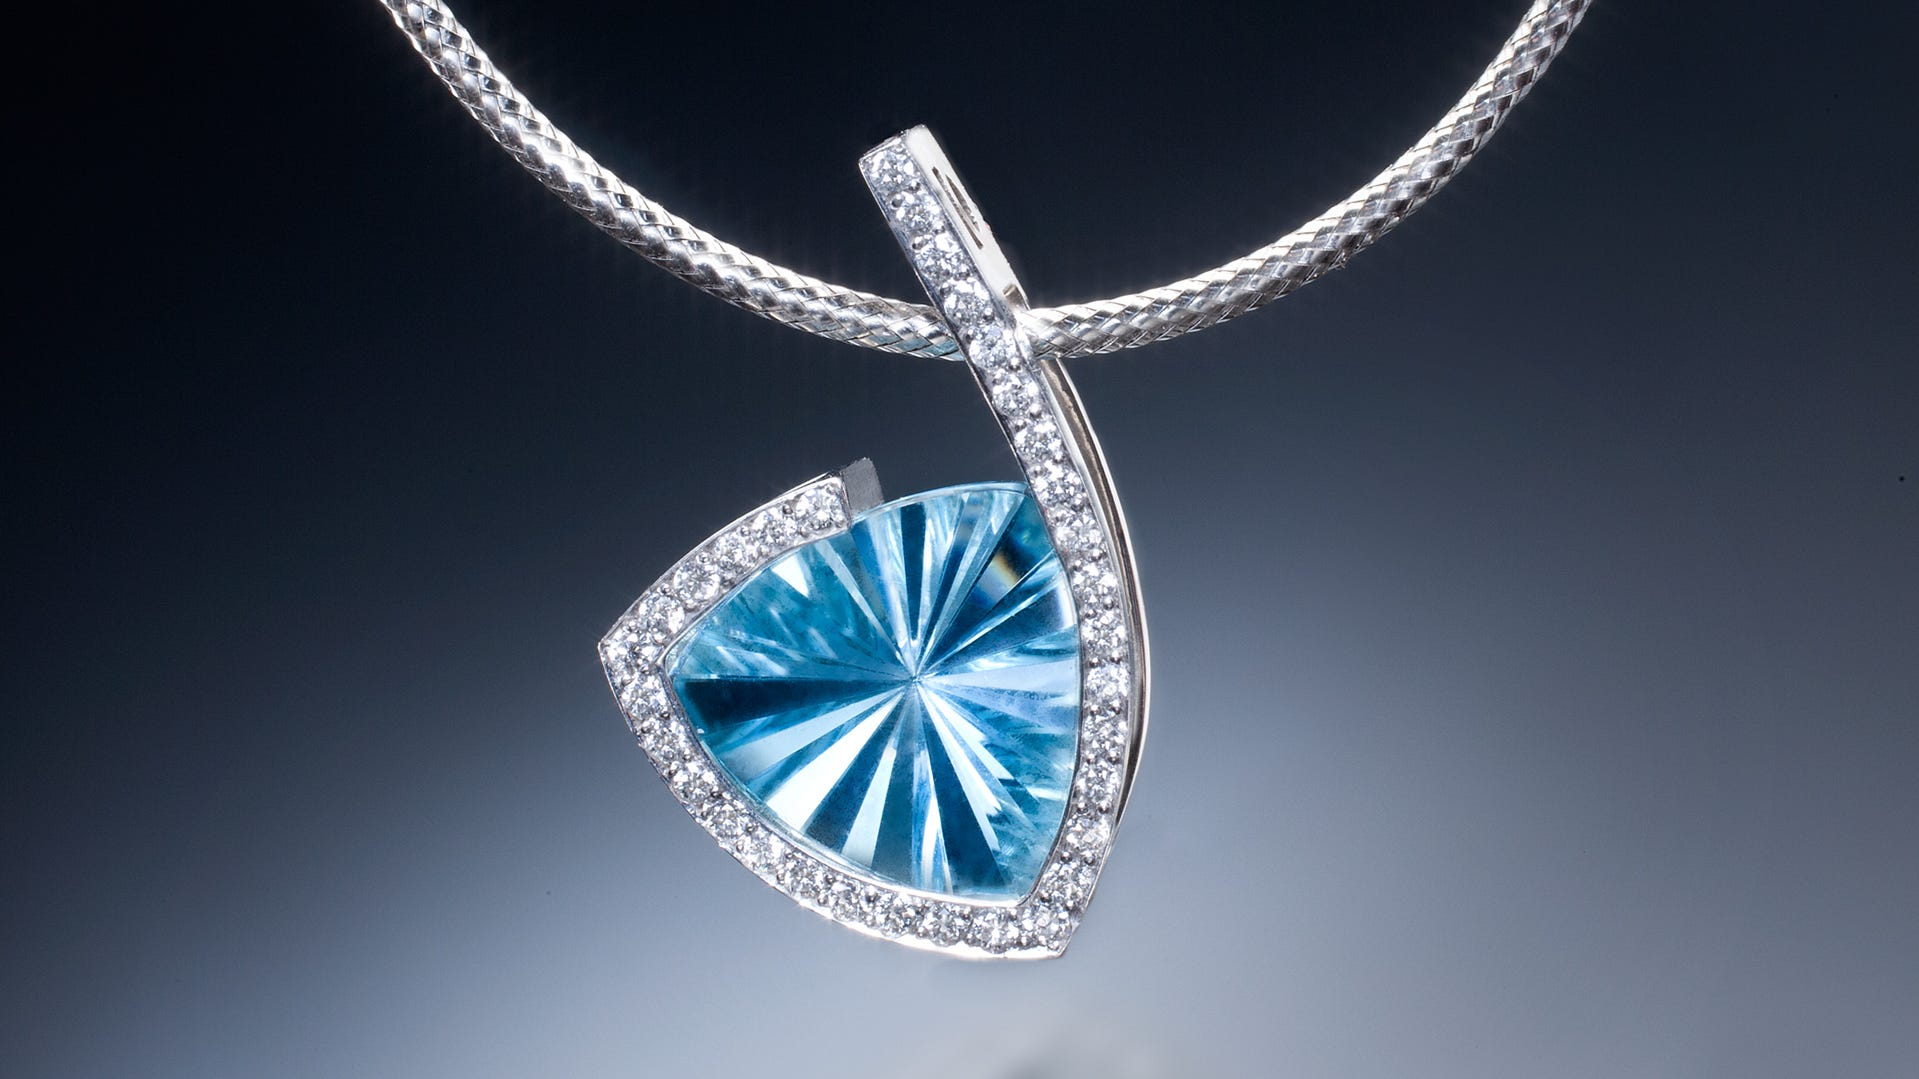 Fine crafts, such as this necklace with a pendant of aquamarine and diamonds, are on display at the Morristown Armory as part of the 42nd Annual Morristown CraftMarket.  The three-day craft and art fair includes a silent auction to raise money for the neonatal ICU at Morristown Memorial Hospital.